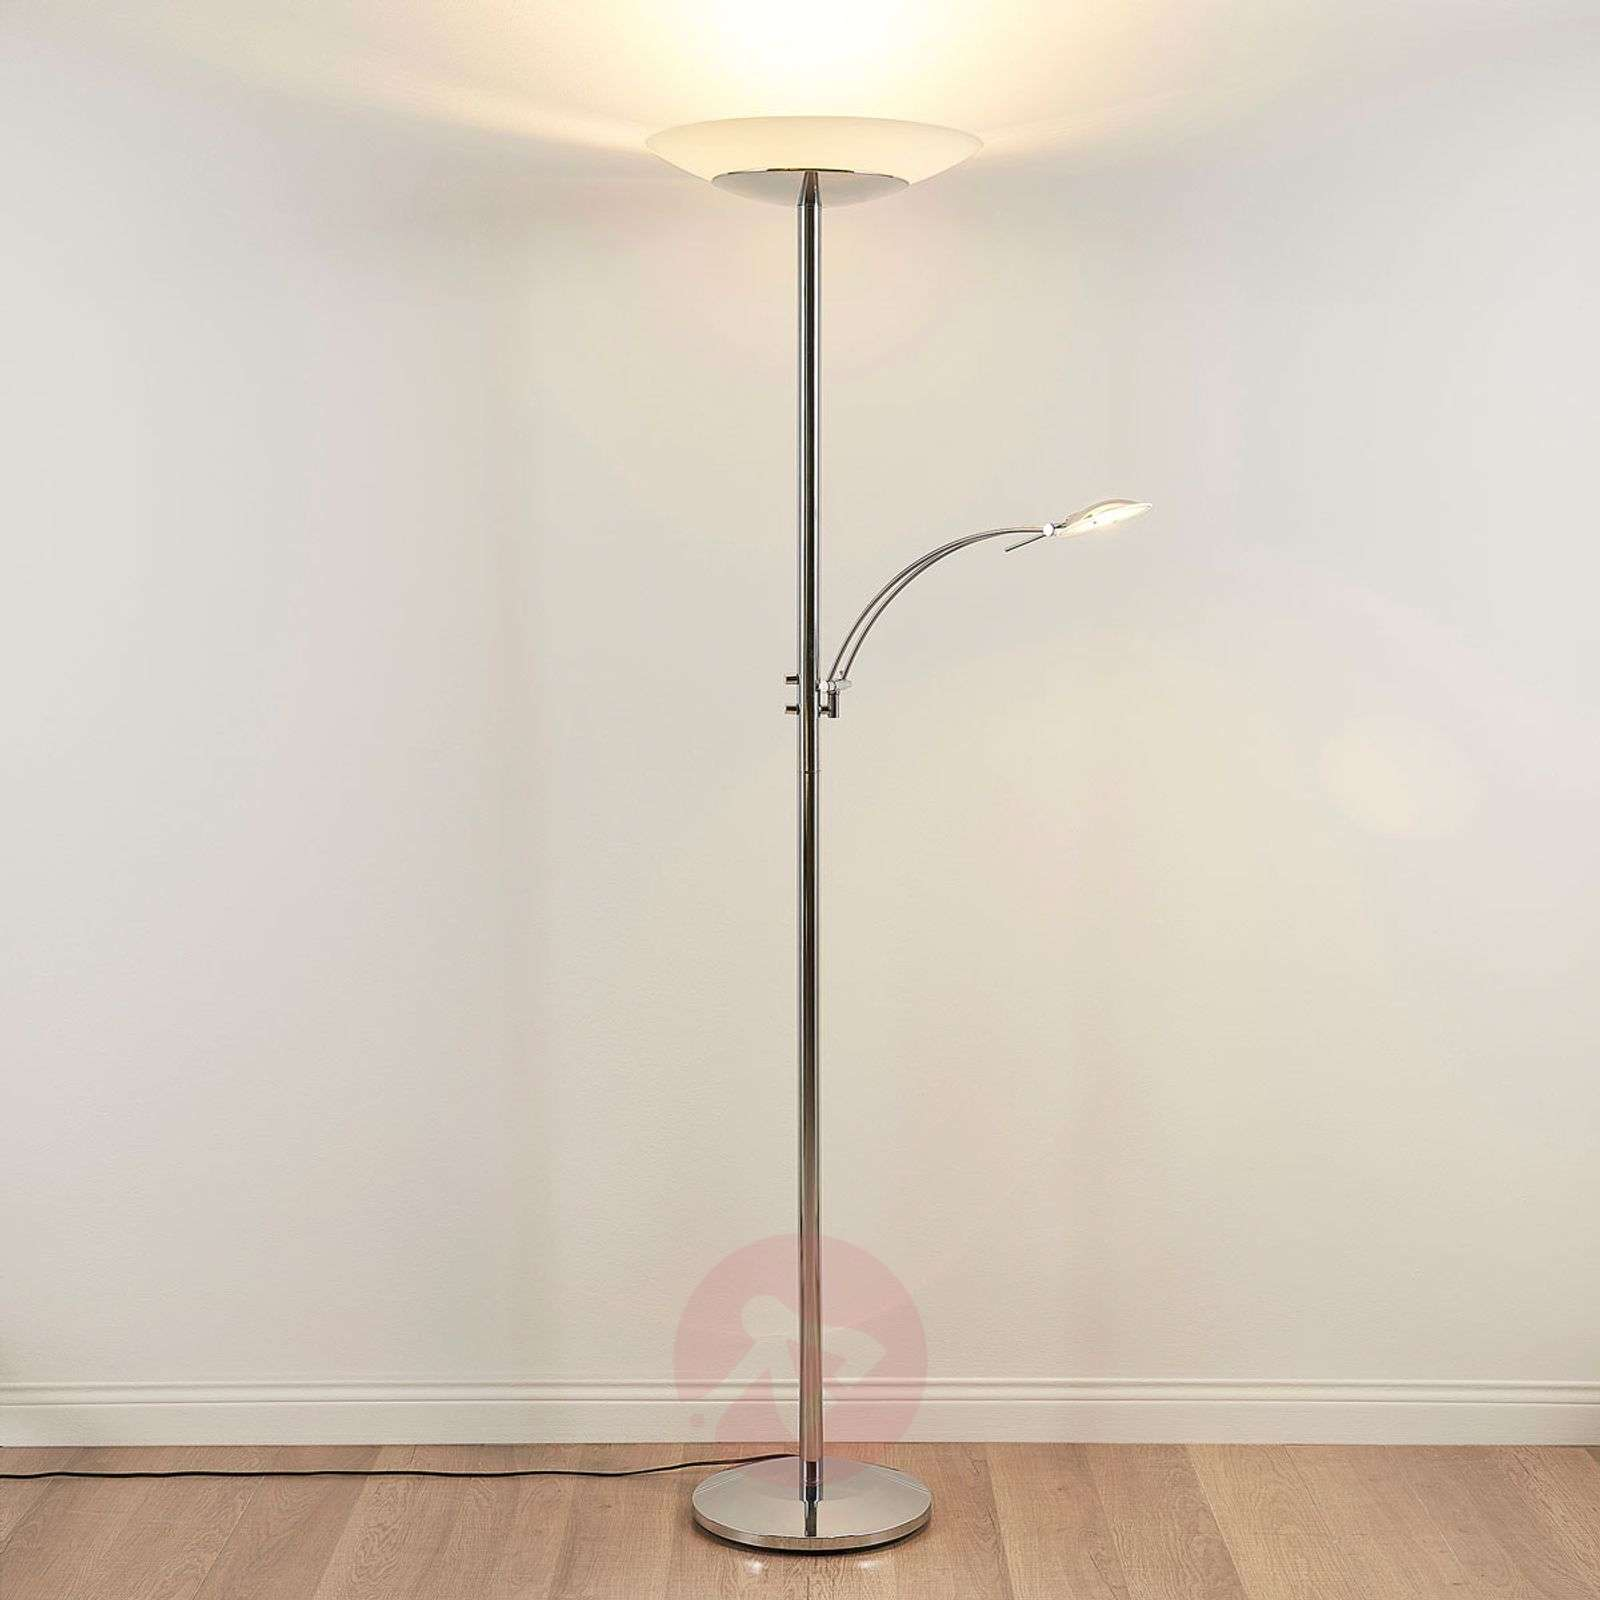 Chrome-plated LED uplighter Ilinca with dimmer-9621477-010